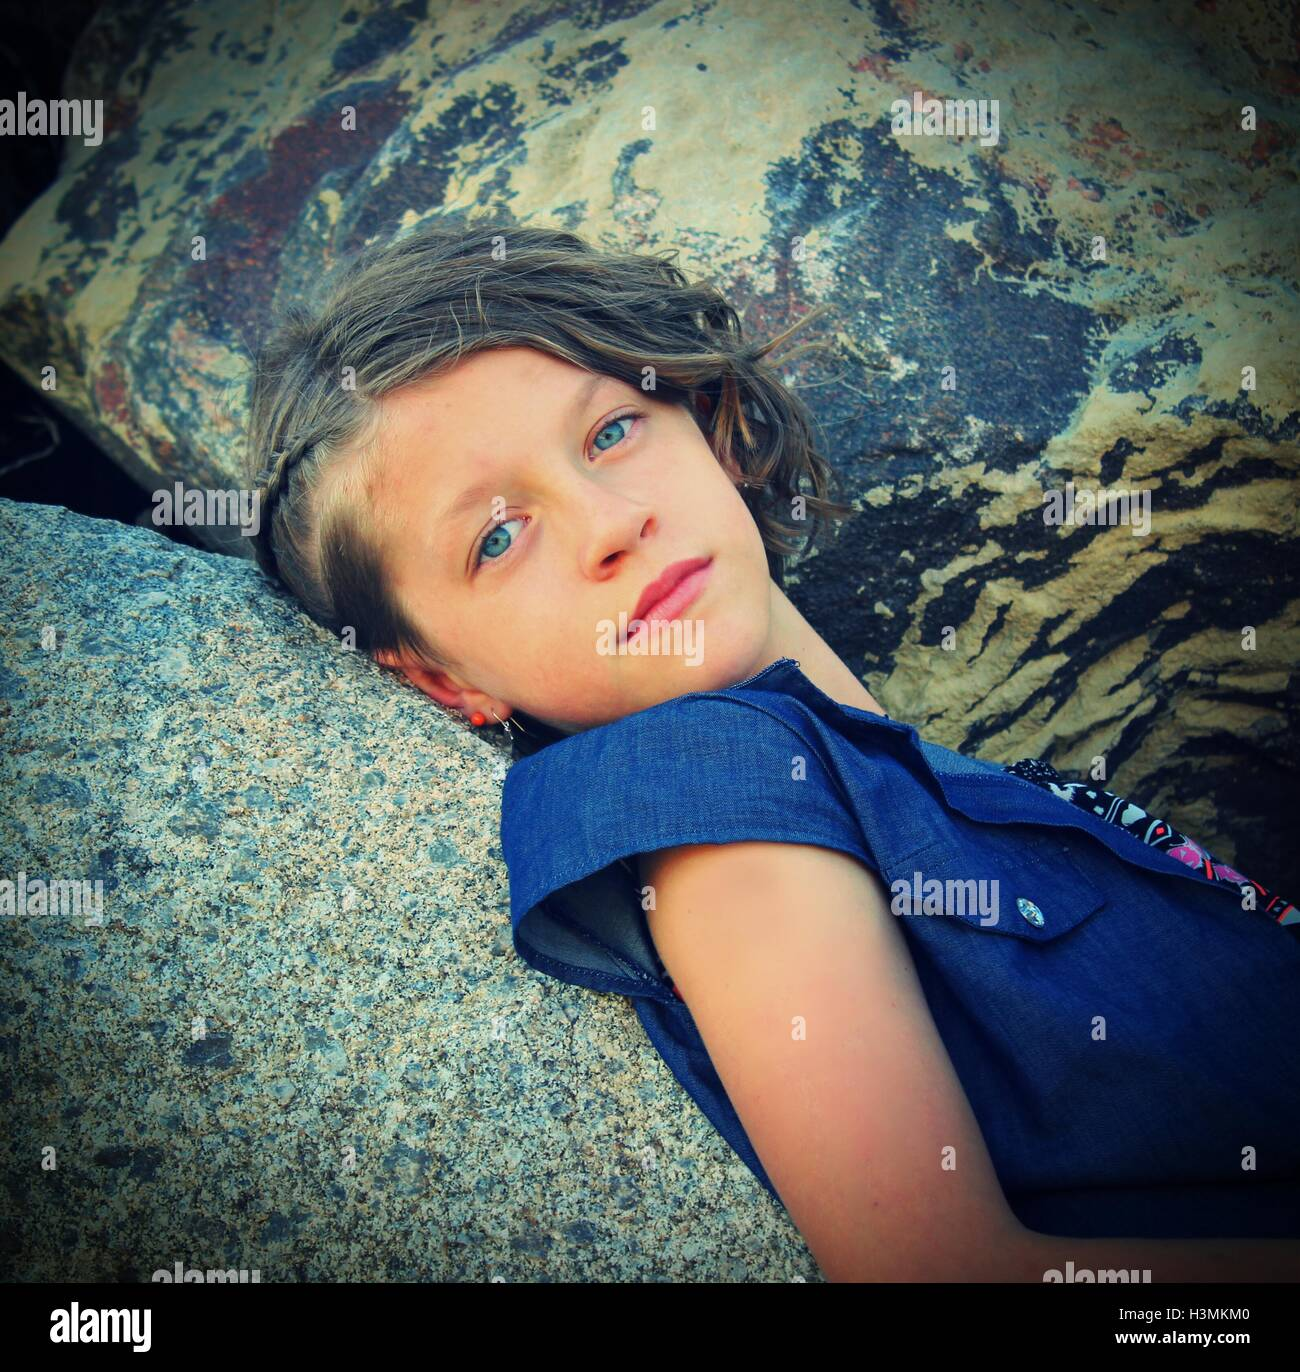 young blue eyed female model posing on colorful boulders